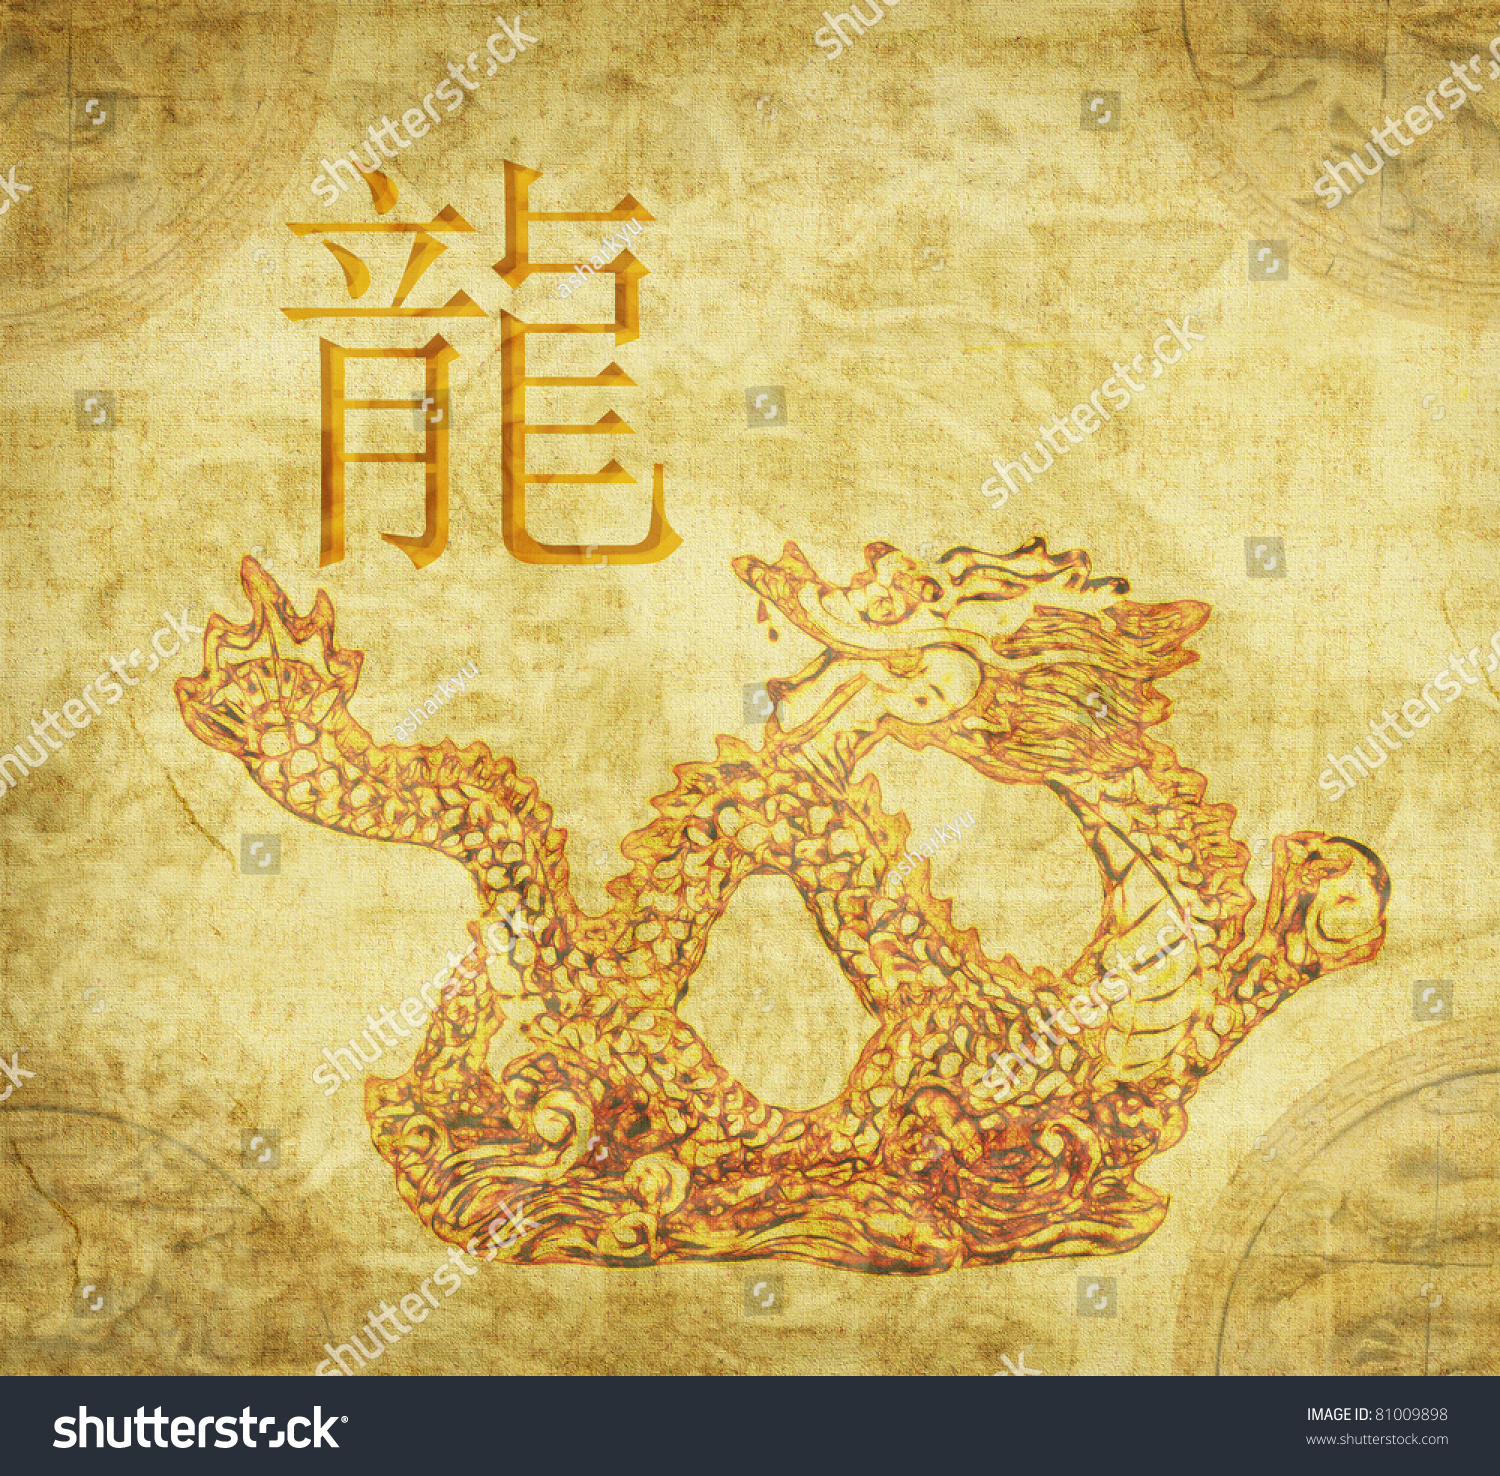 chinese dragon texture - photo #35